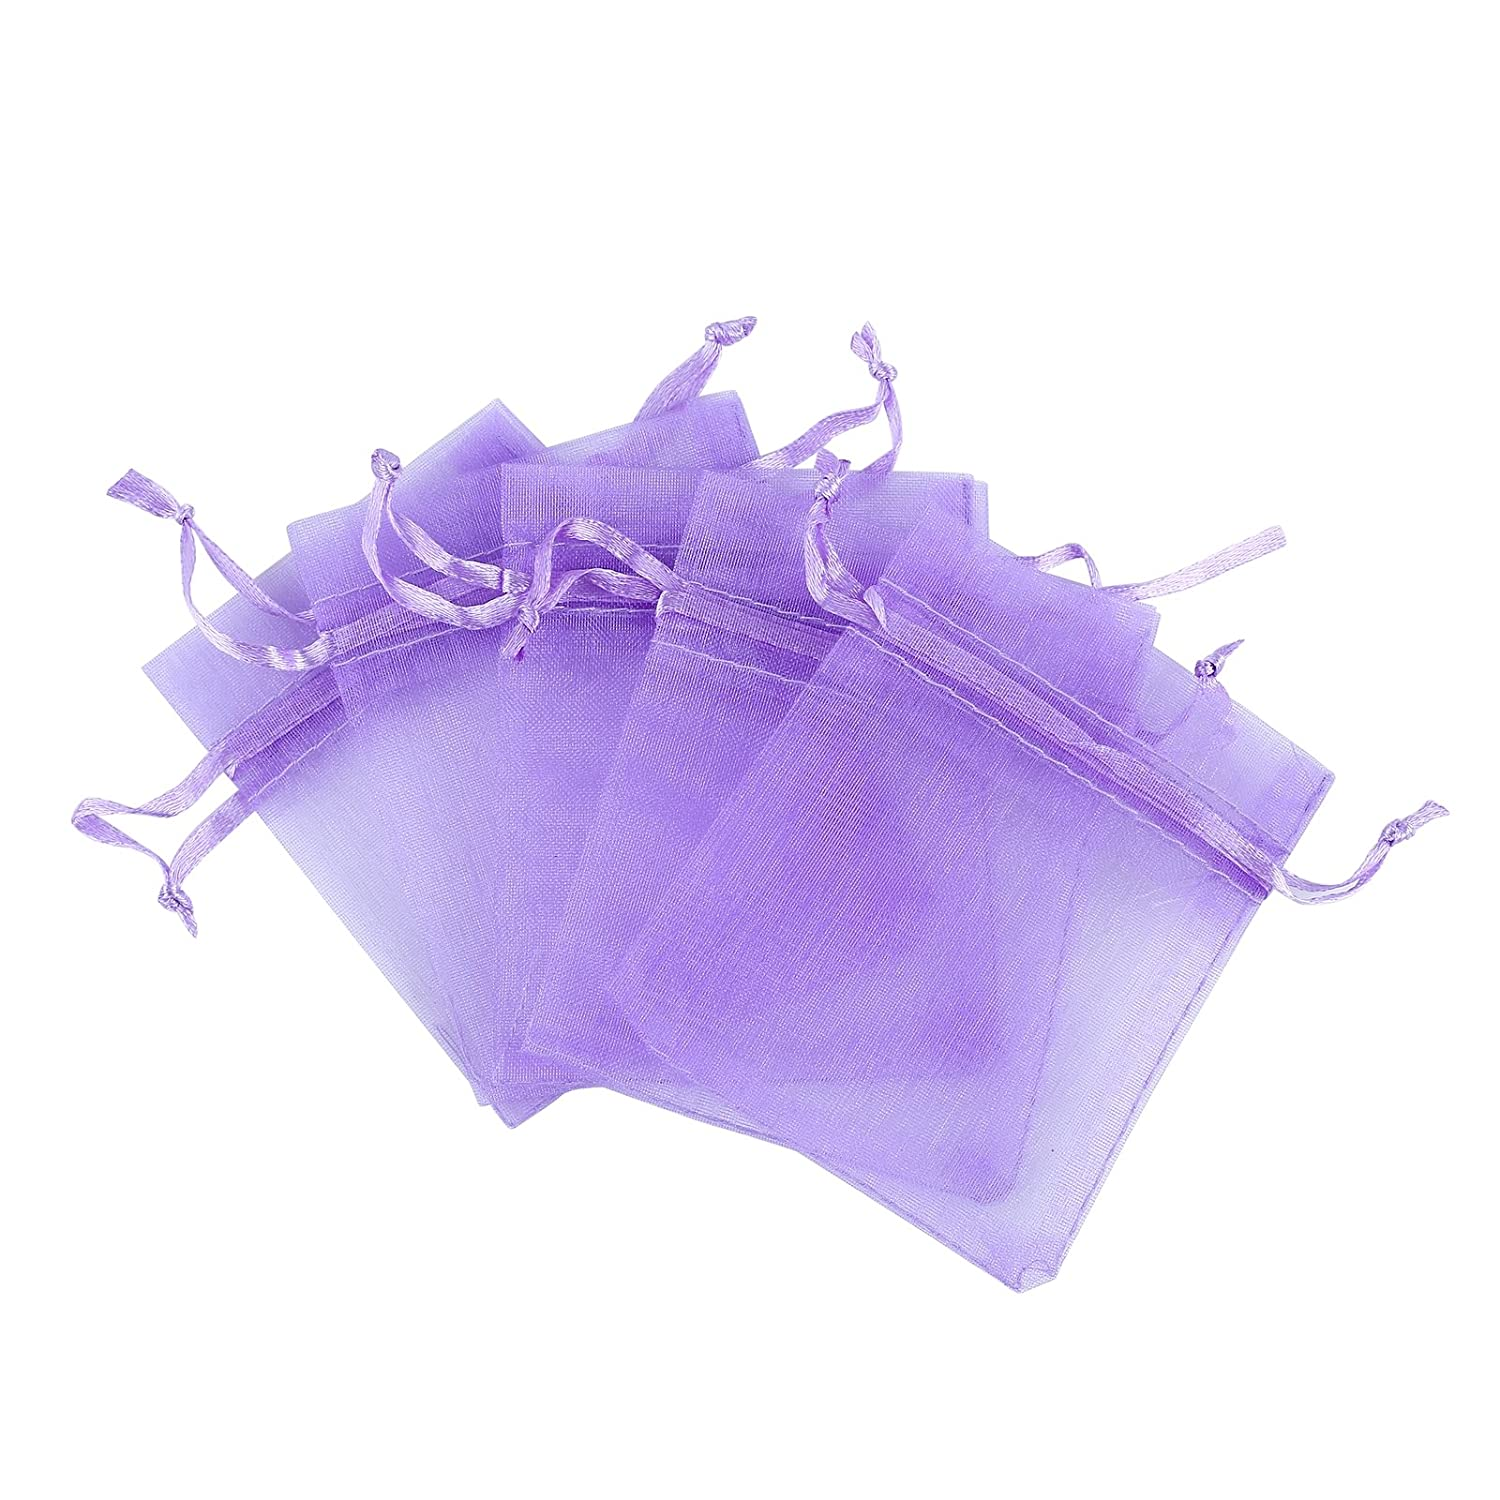 Anleolife 50pcs Purple Lavender Organza Bags 7x5 inch Bushiness Sample Display Bag Wedding Favors Gift Bag Jewlery Candy Bag Velvet Drawstring Pouch(50pcs purple)